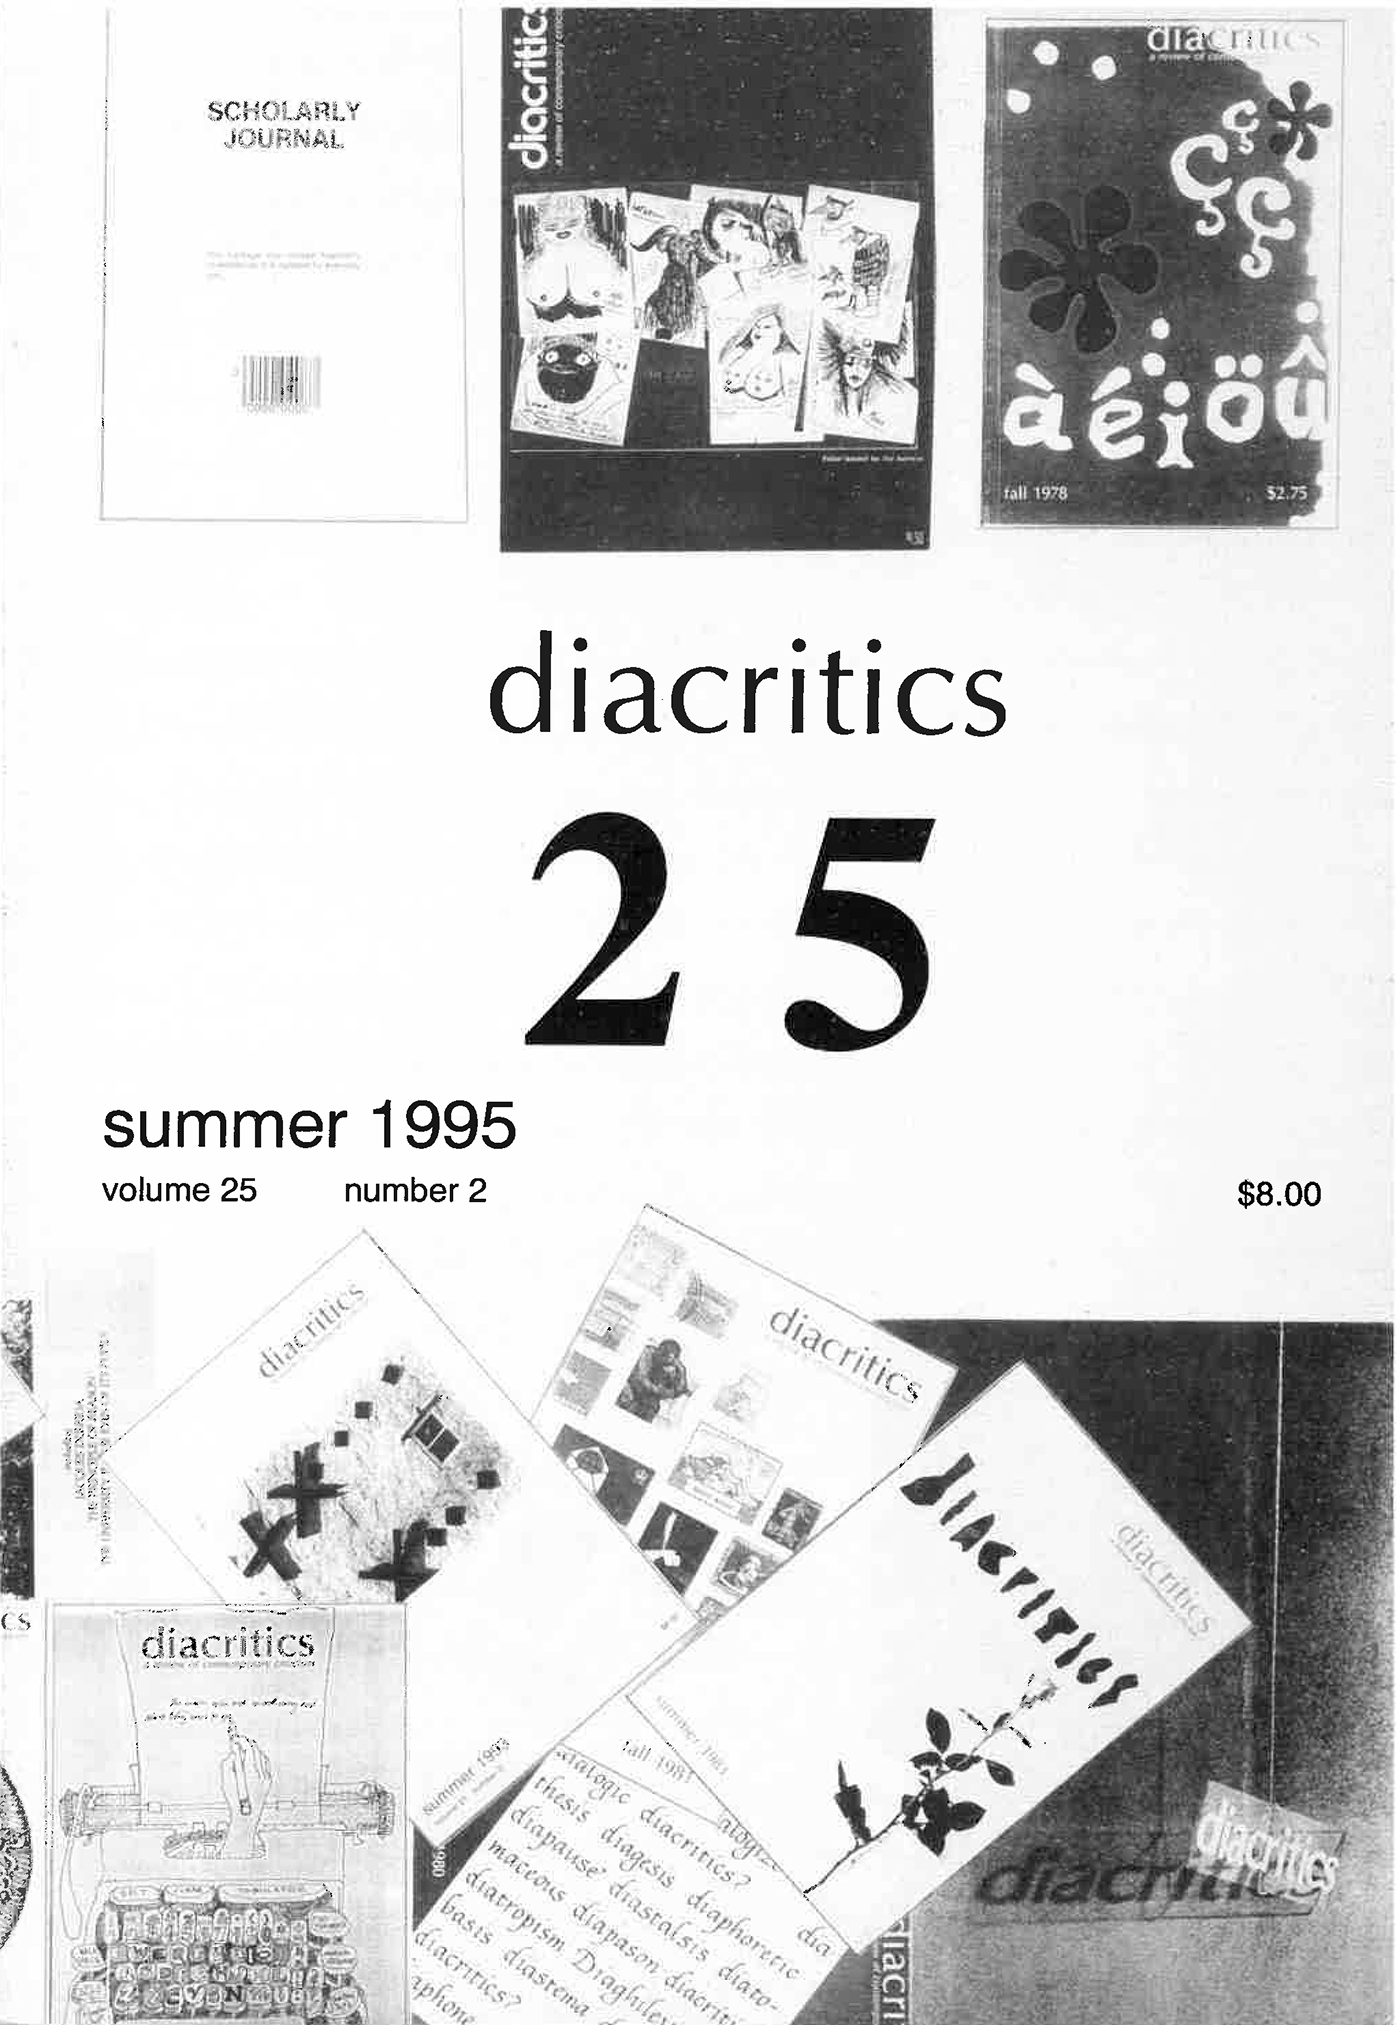 DIACRITICS VOLUME 25 NUMBER 2 1995